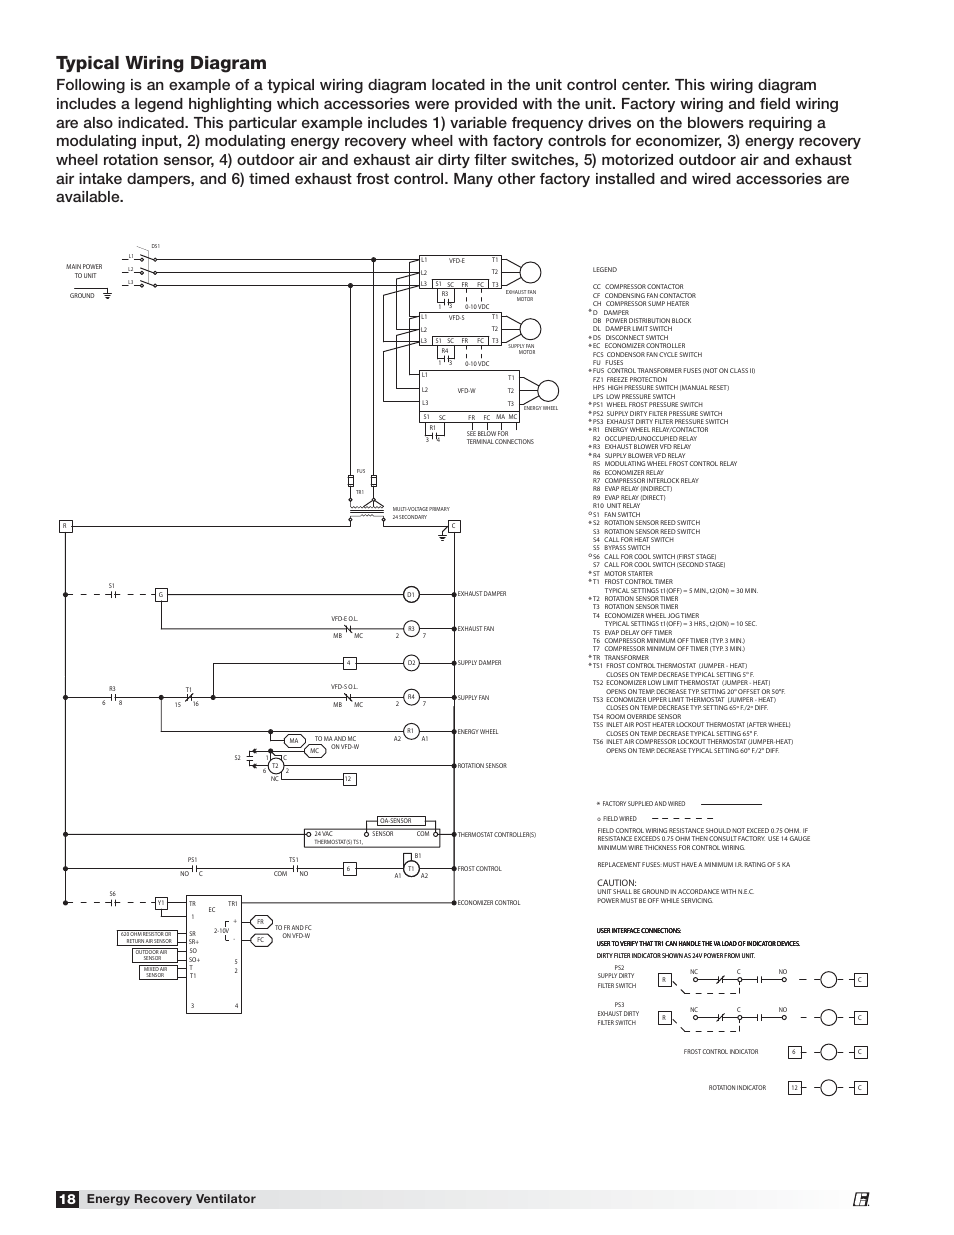 Typical wiring diagram energy recovery ventilator greenheck fan typical wiring diagram energy recovery ventilator greenheck fan 455924 erv 522 user manual page 18 36 swarovskicordoba Images